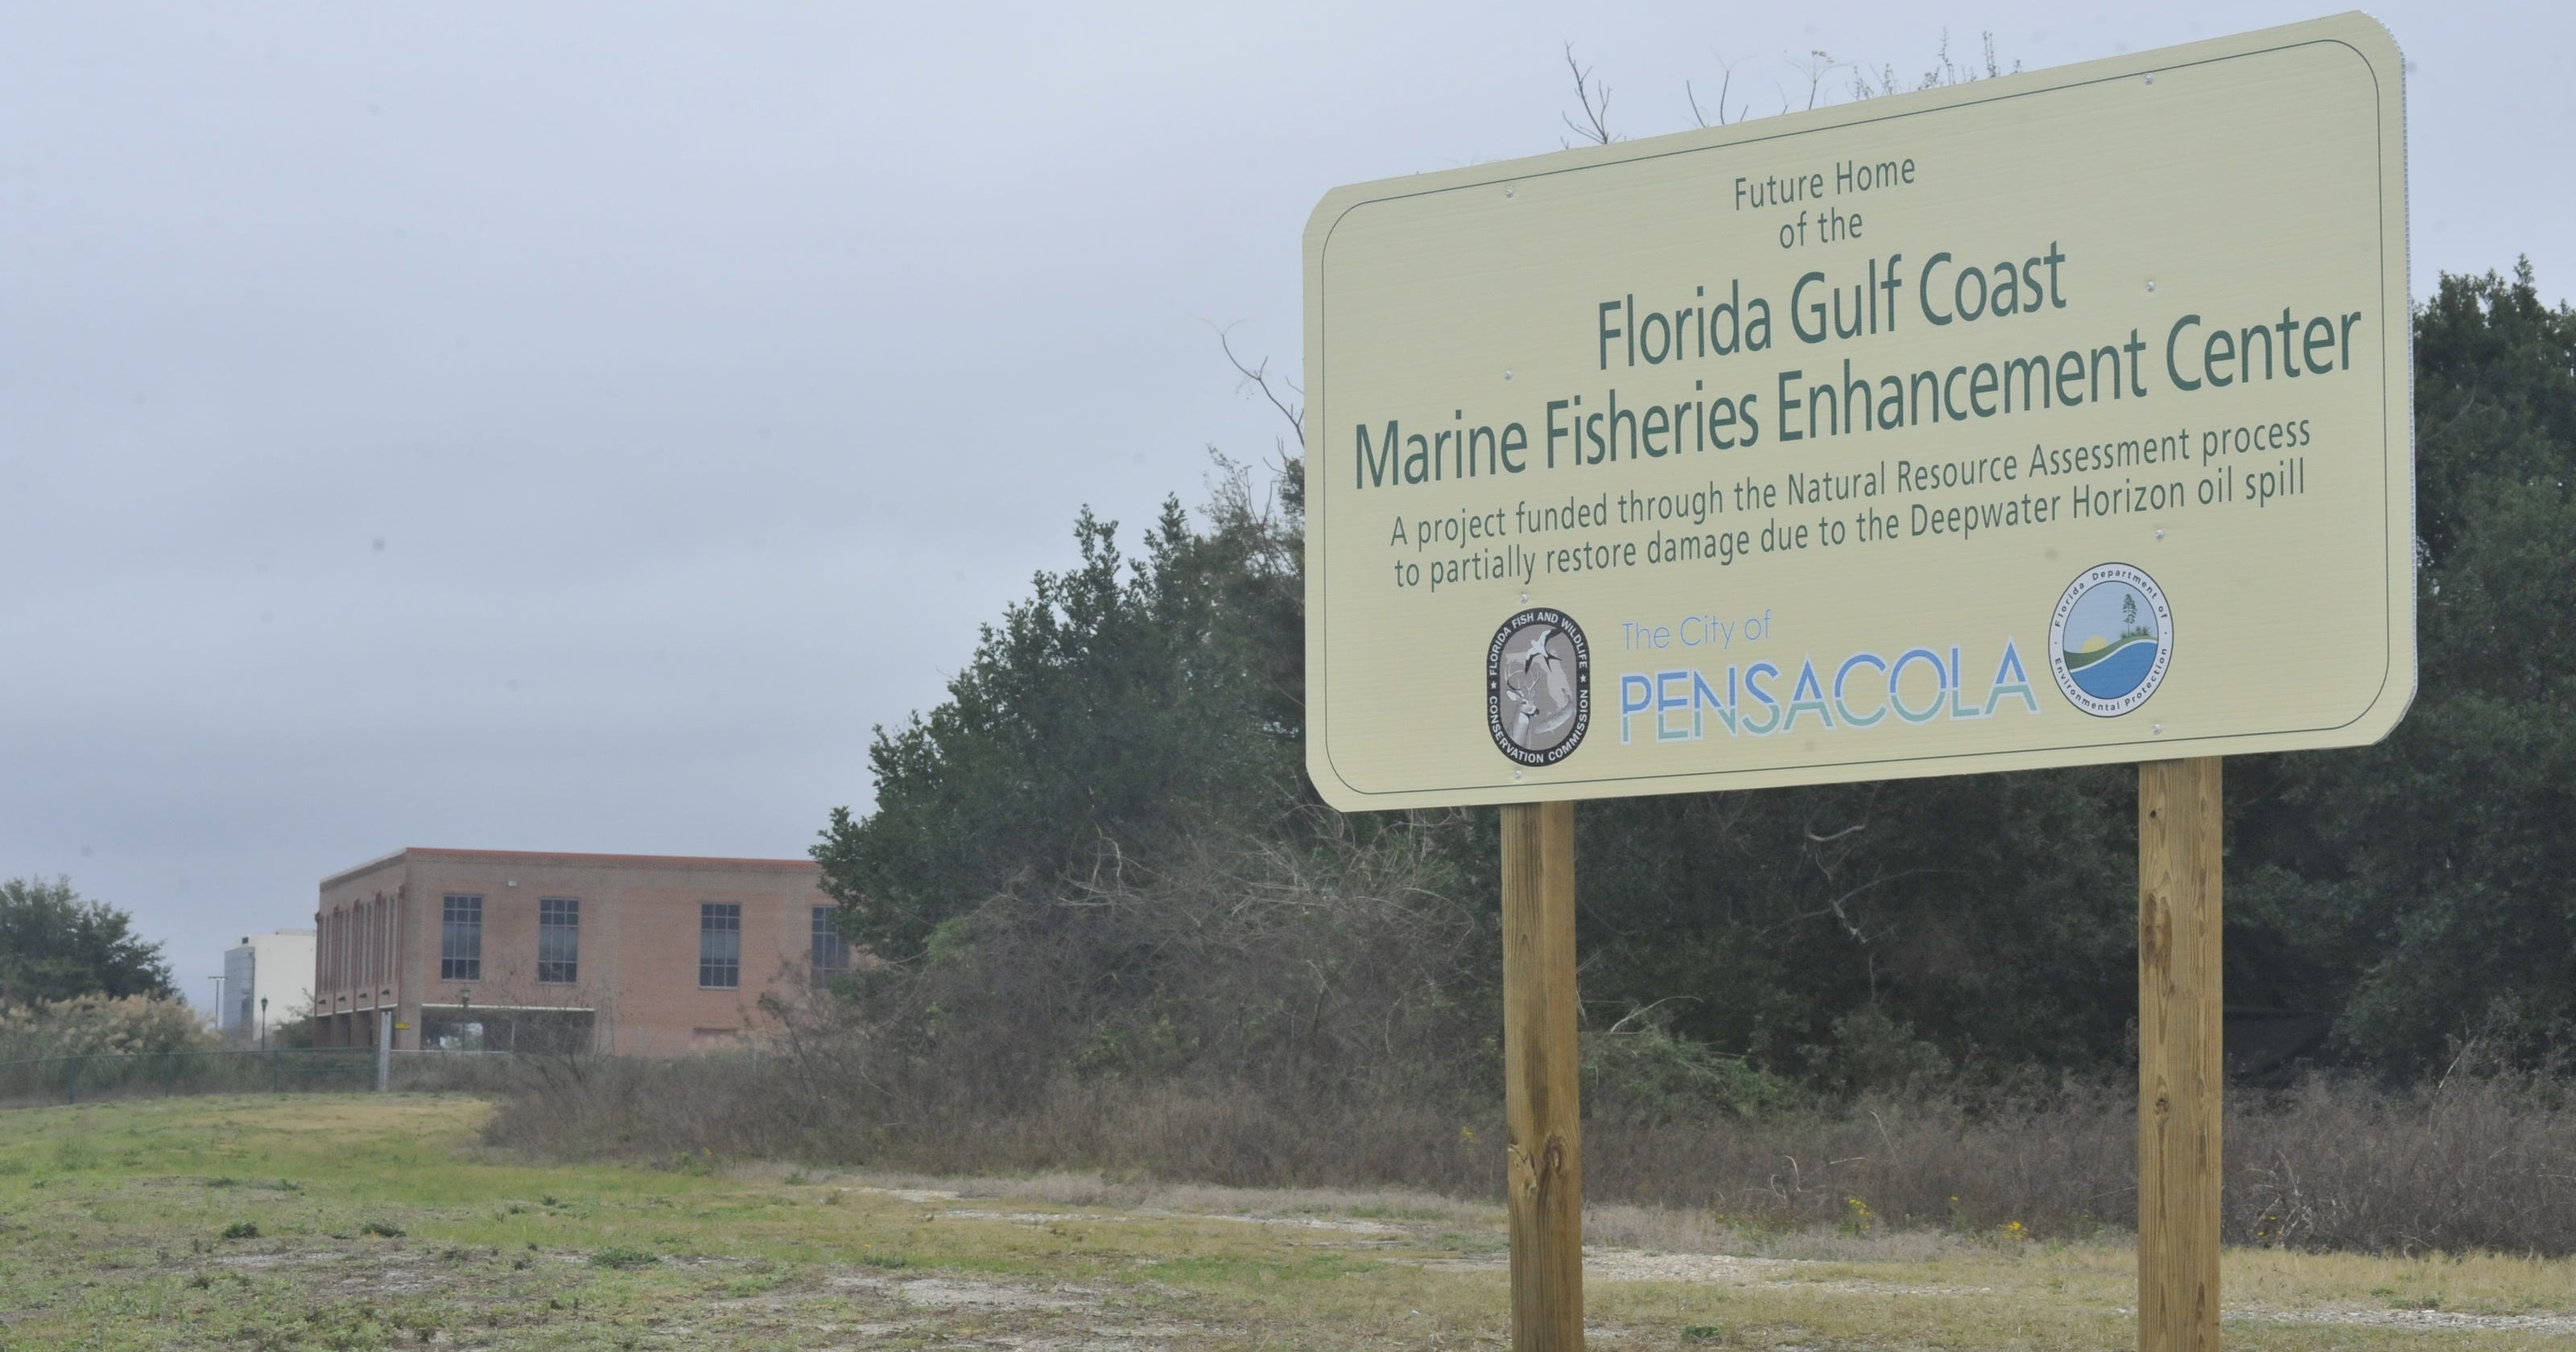 Engineer chosen for Pensacola fish hatchery